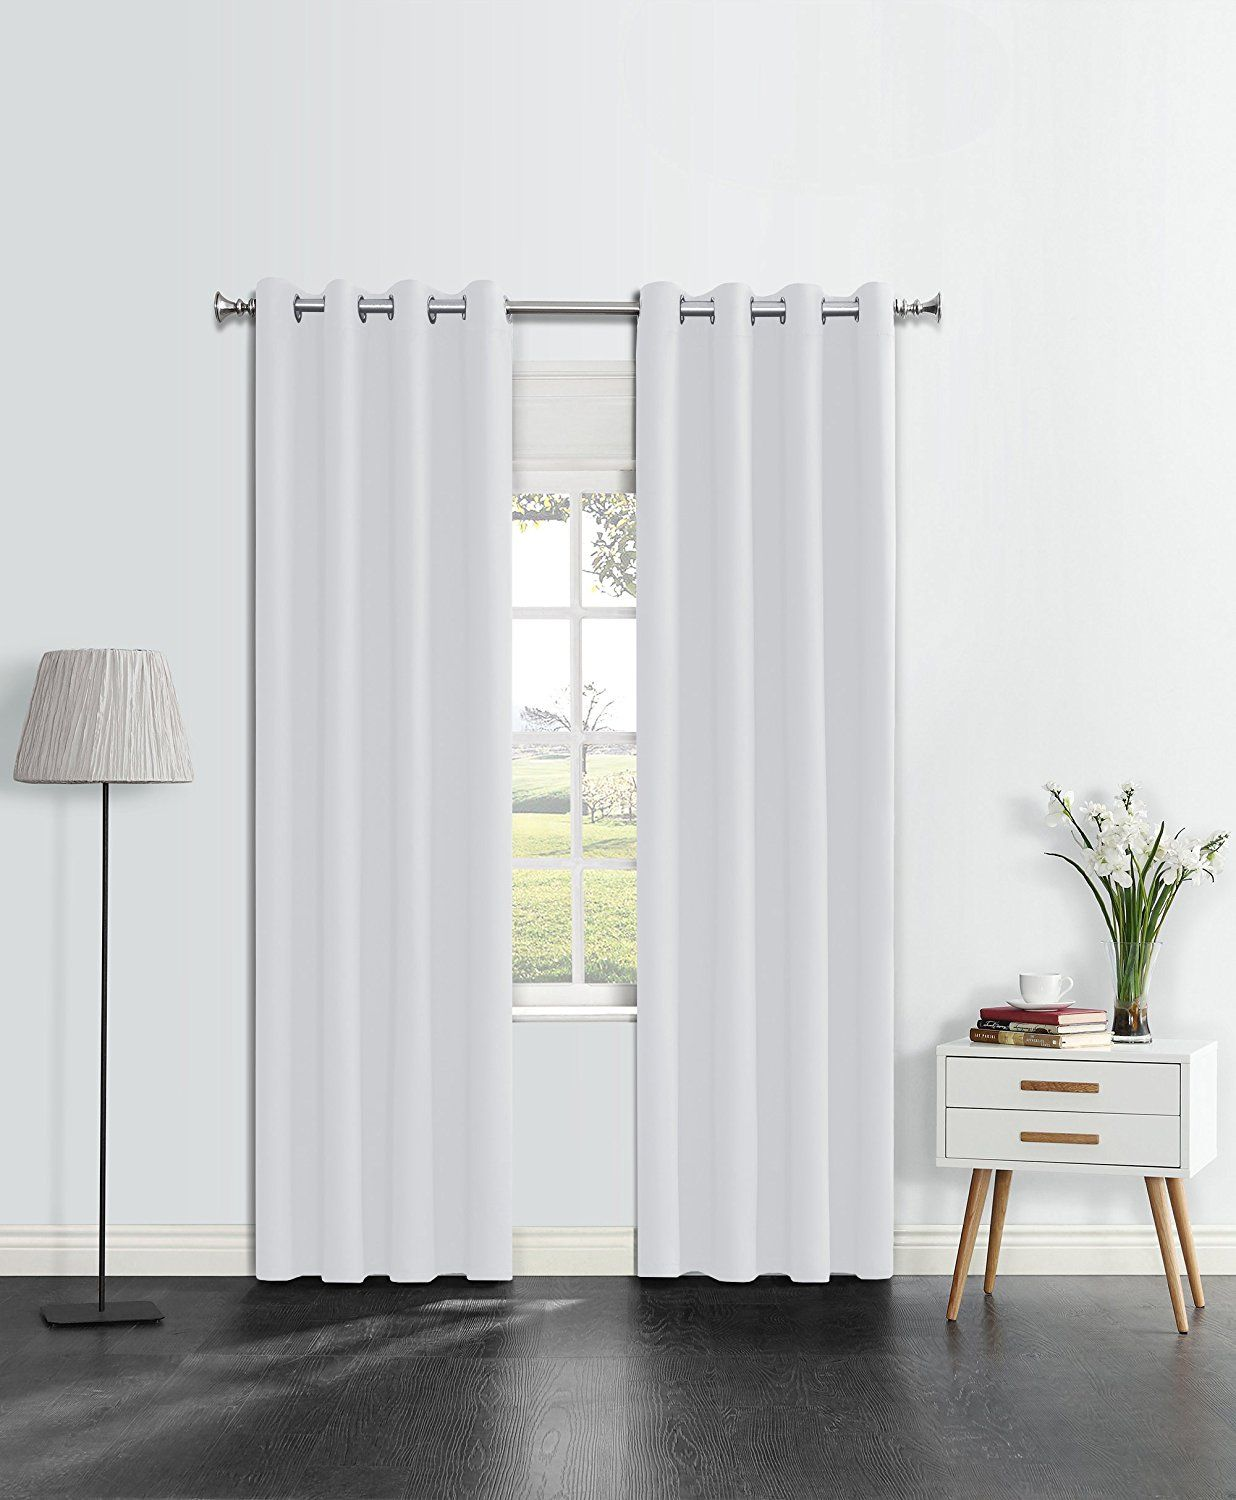 Bedroom Curtains Sale Blackout Thermal Curtains Sale Ease Bedding With Style